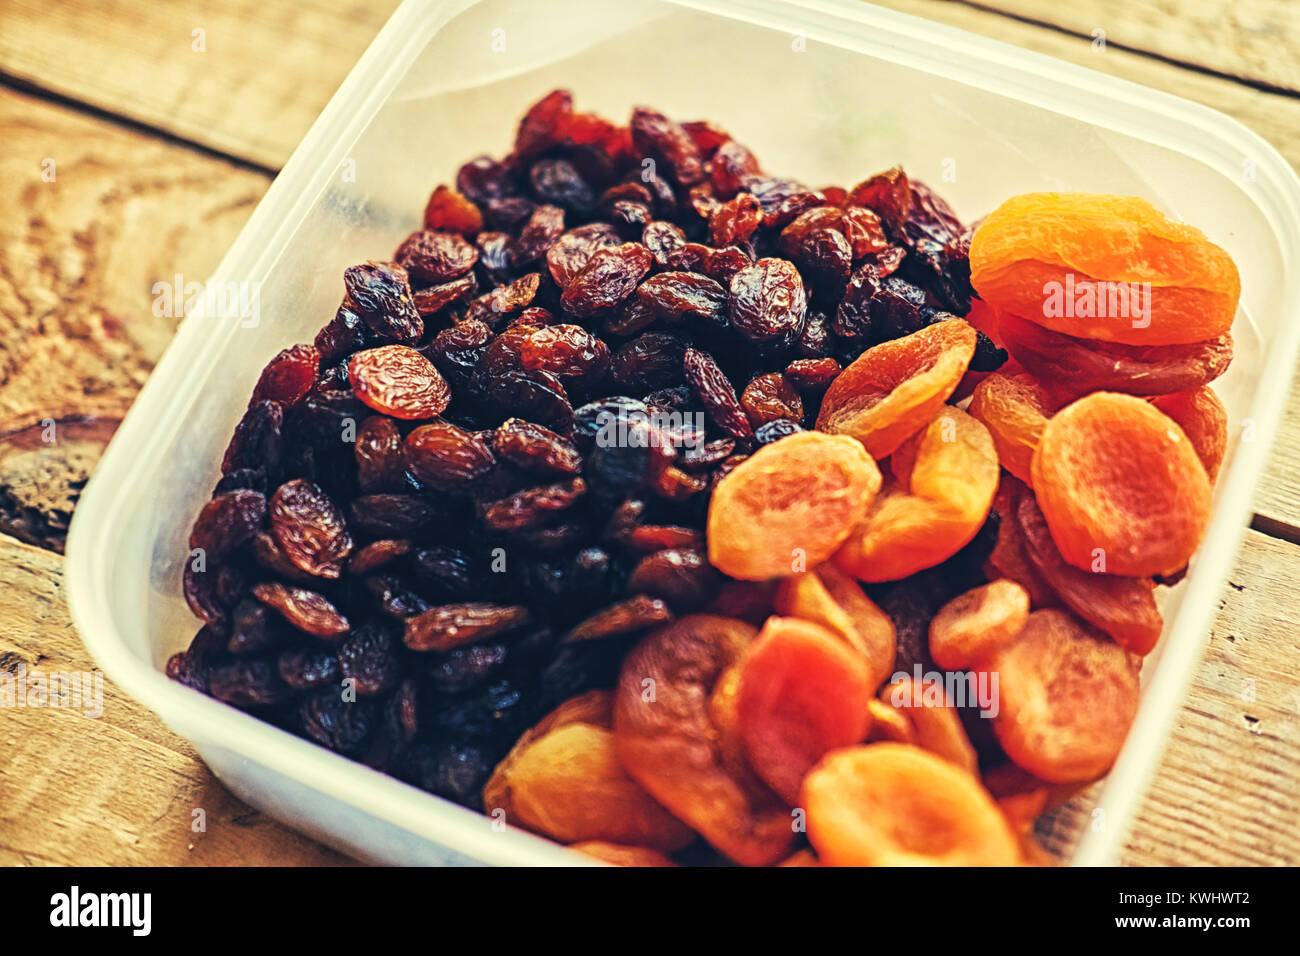 Diet food. Raisins and dried apricots - Stock Image